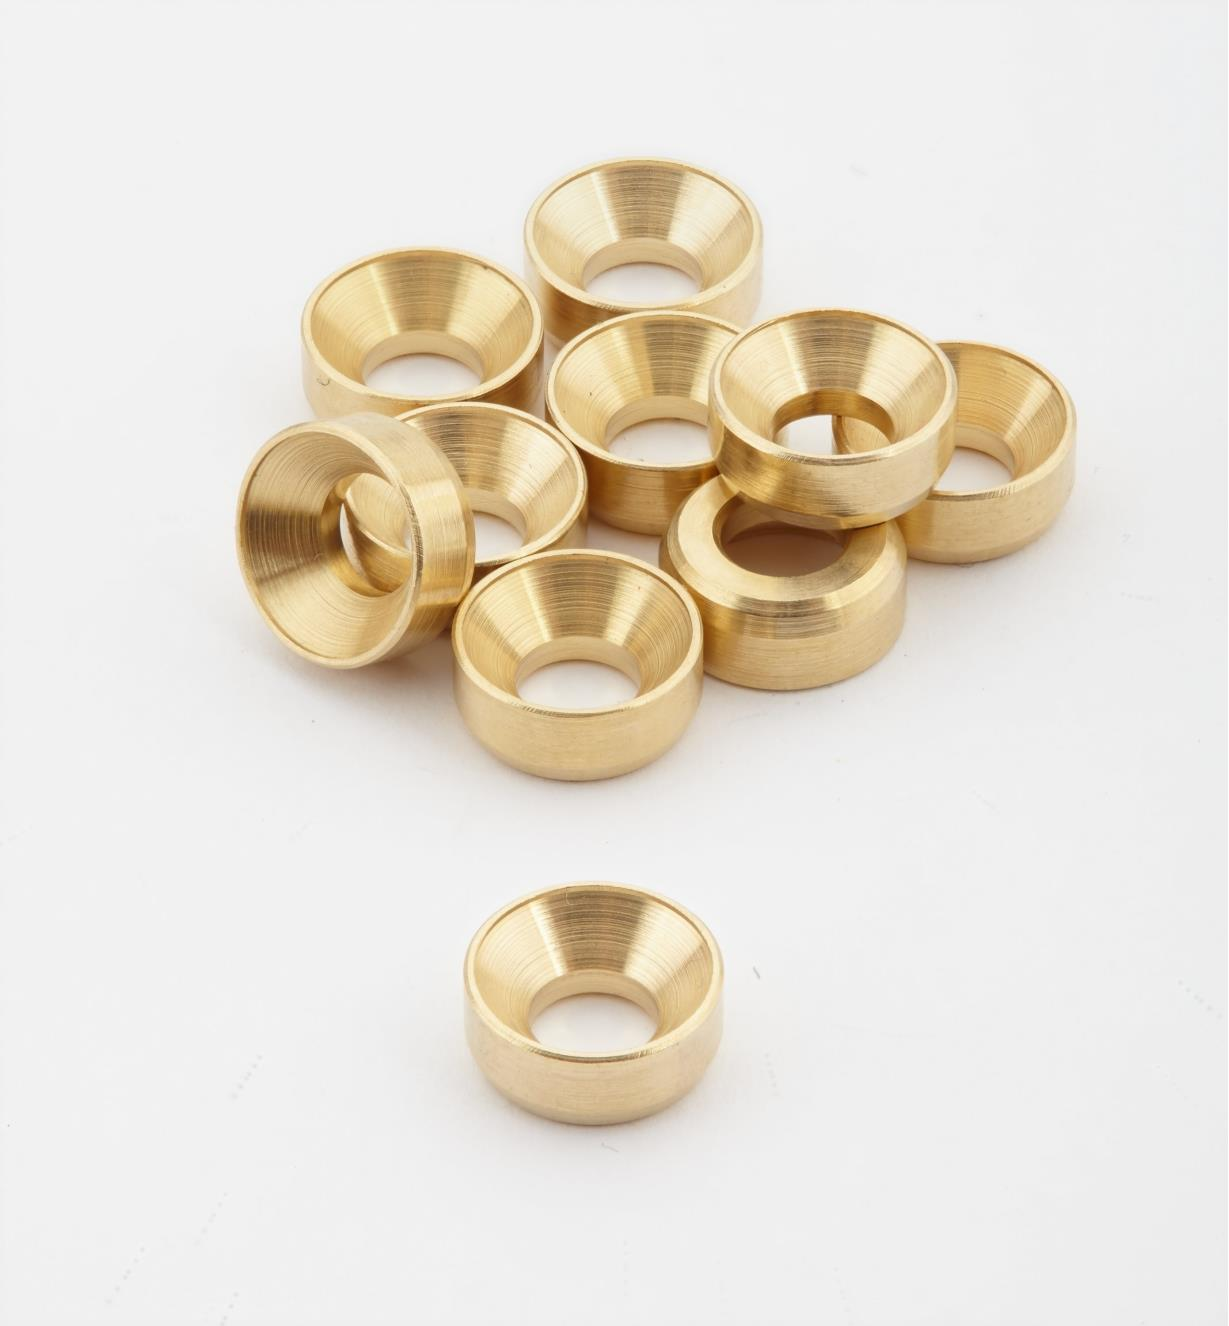 01K7002 - #8 Brass Washers, pkg. of 10